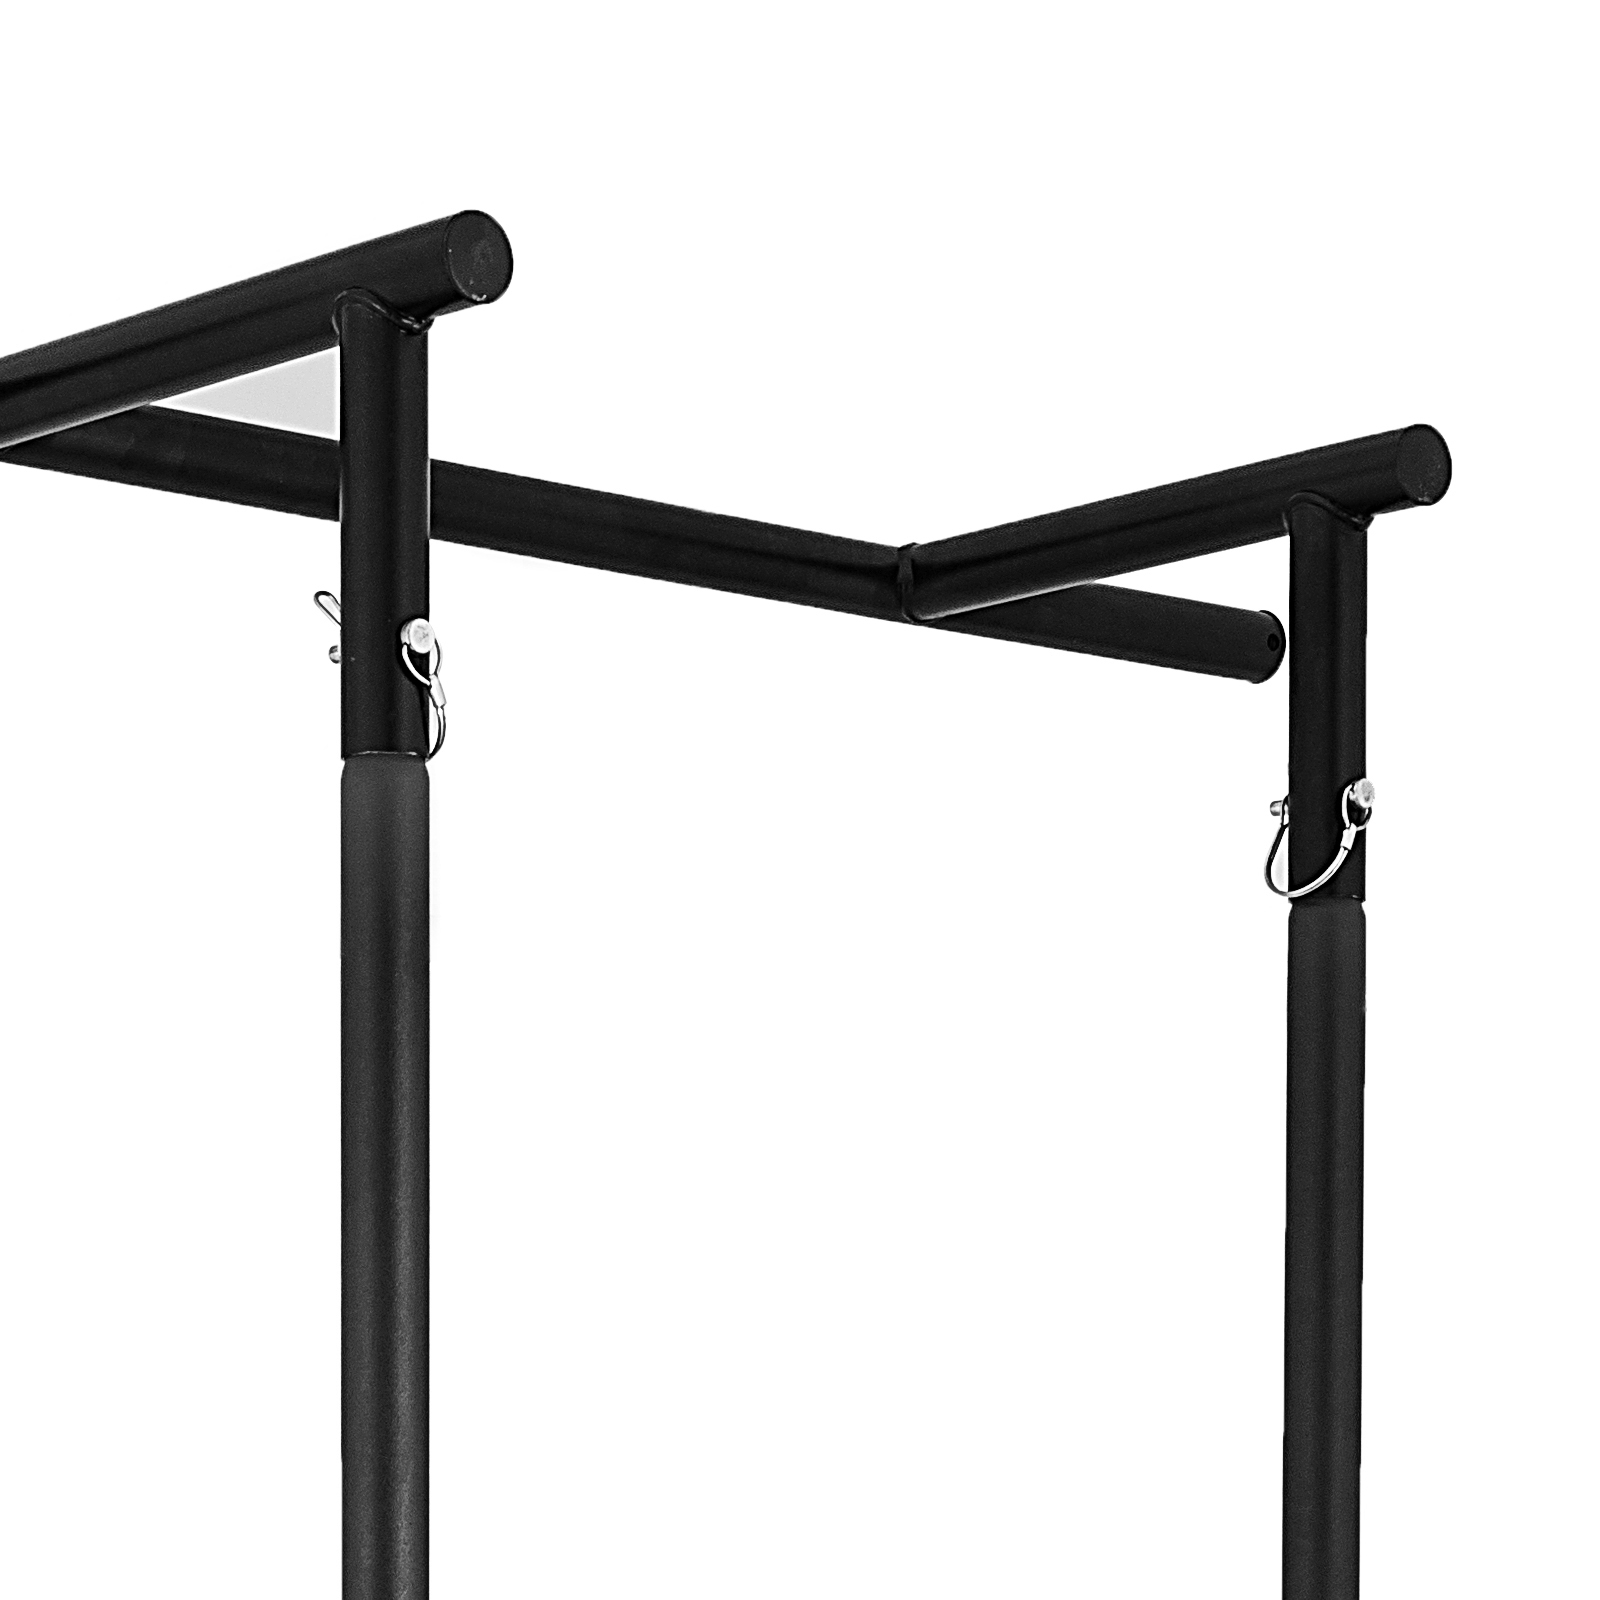 Portable-Power-Tower-for-Home-Gym-Workout-With-Dip-Station-And-Chin-Pull-Up-Bar thumbnail 46